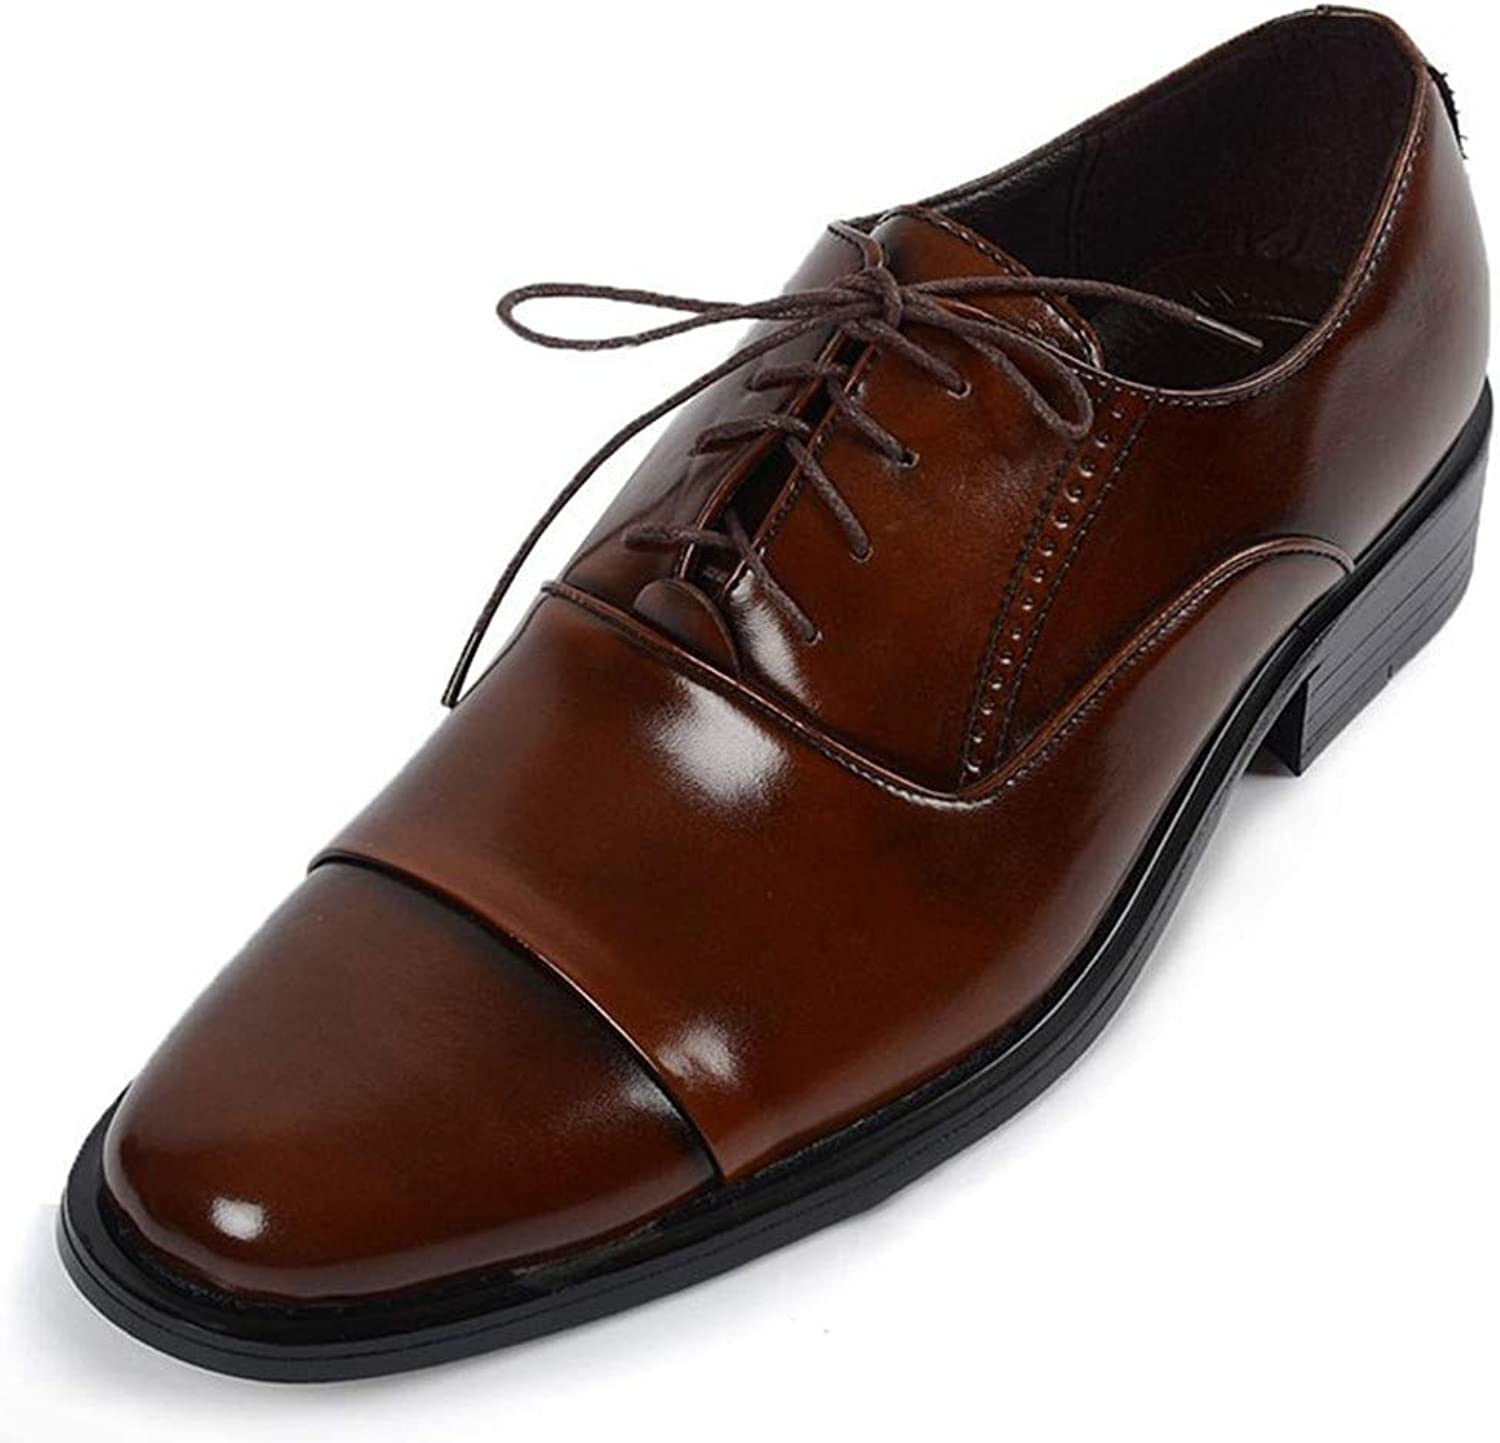 AKJC Business shoes Men Browndress shoes Men's Solid Casual shoes Pointed Business Pu Leather shoes Men's Lace Flat shoes